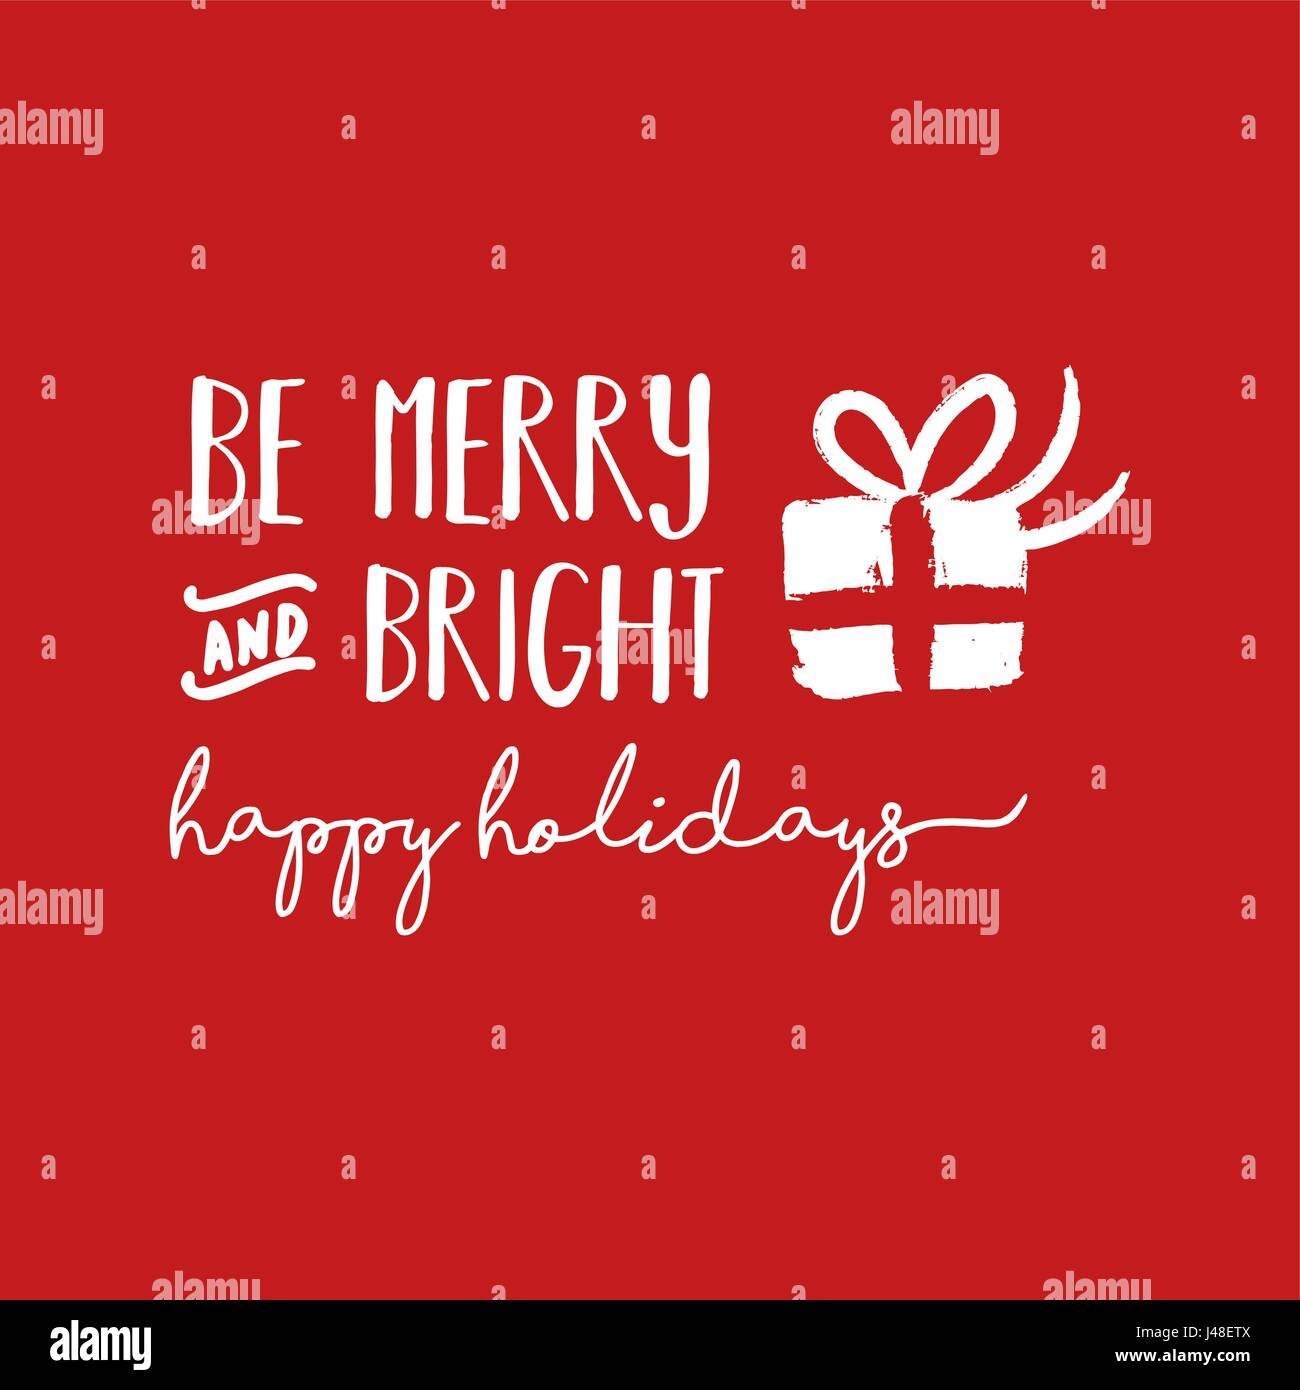 Christmas calligraphic quote design be merry and bright lettering christmas calligraphic quote design be merry and bright lettering illustration for holiday season greeting card eps10 vector m4hsunfo